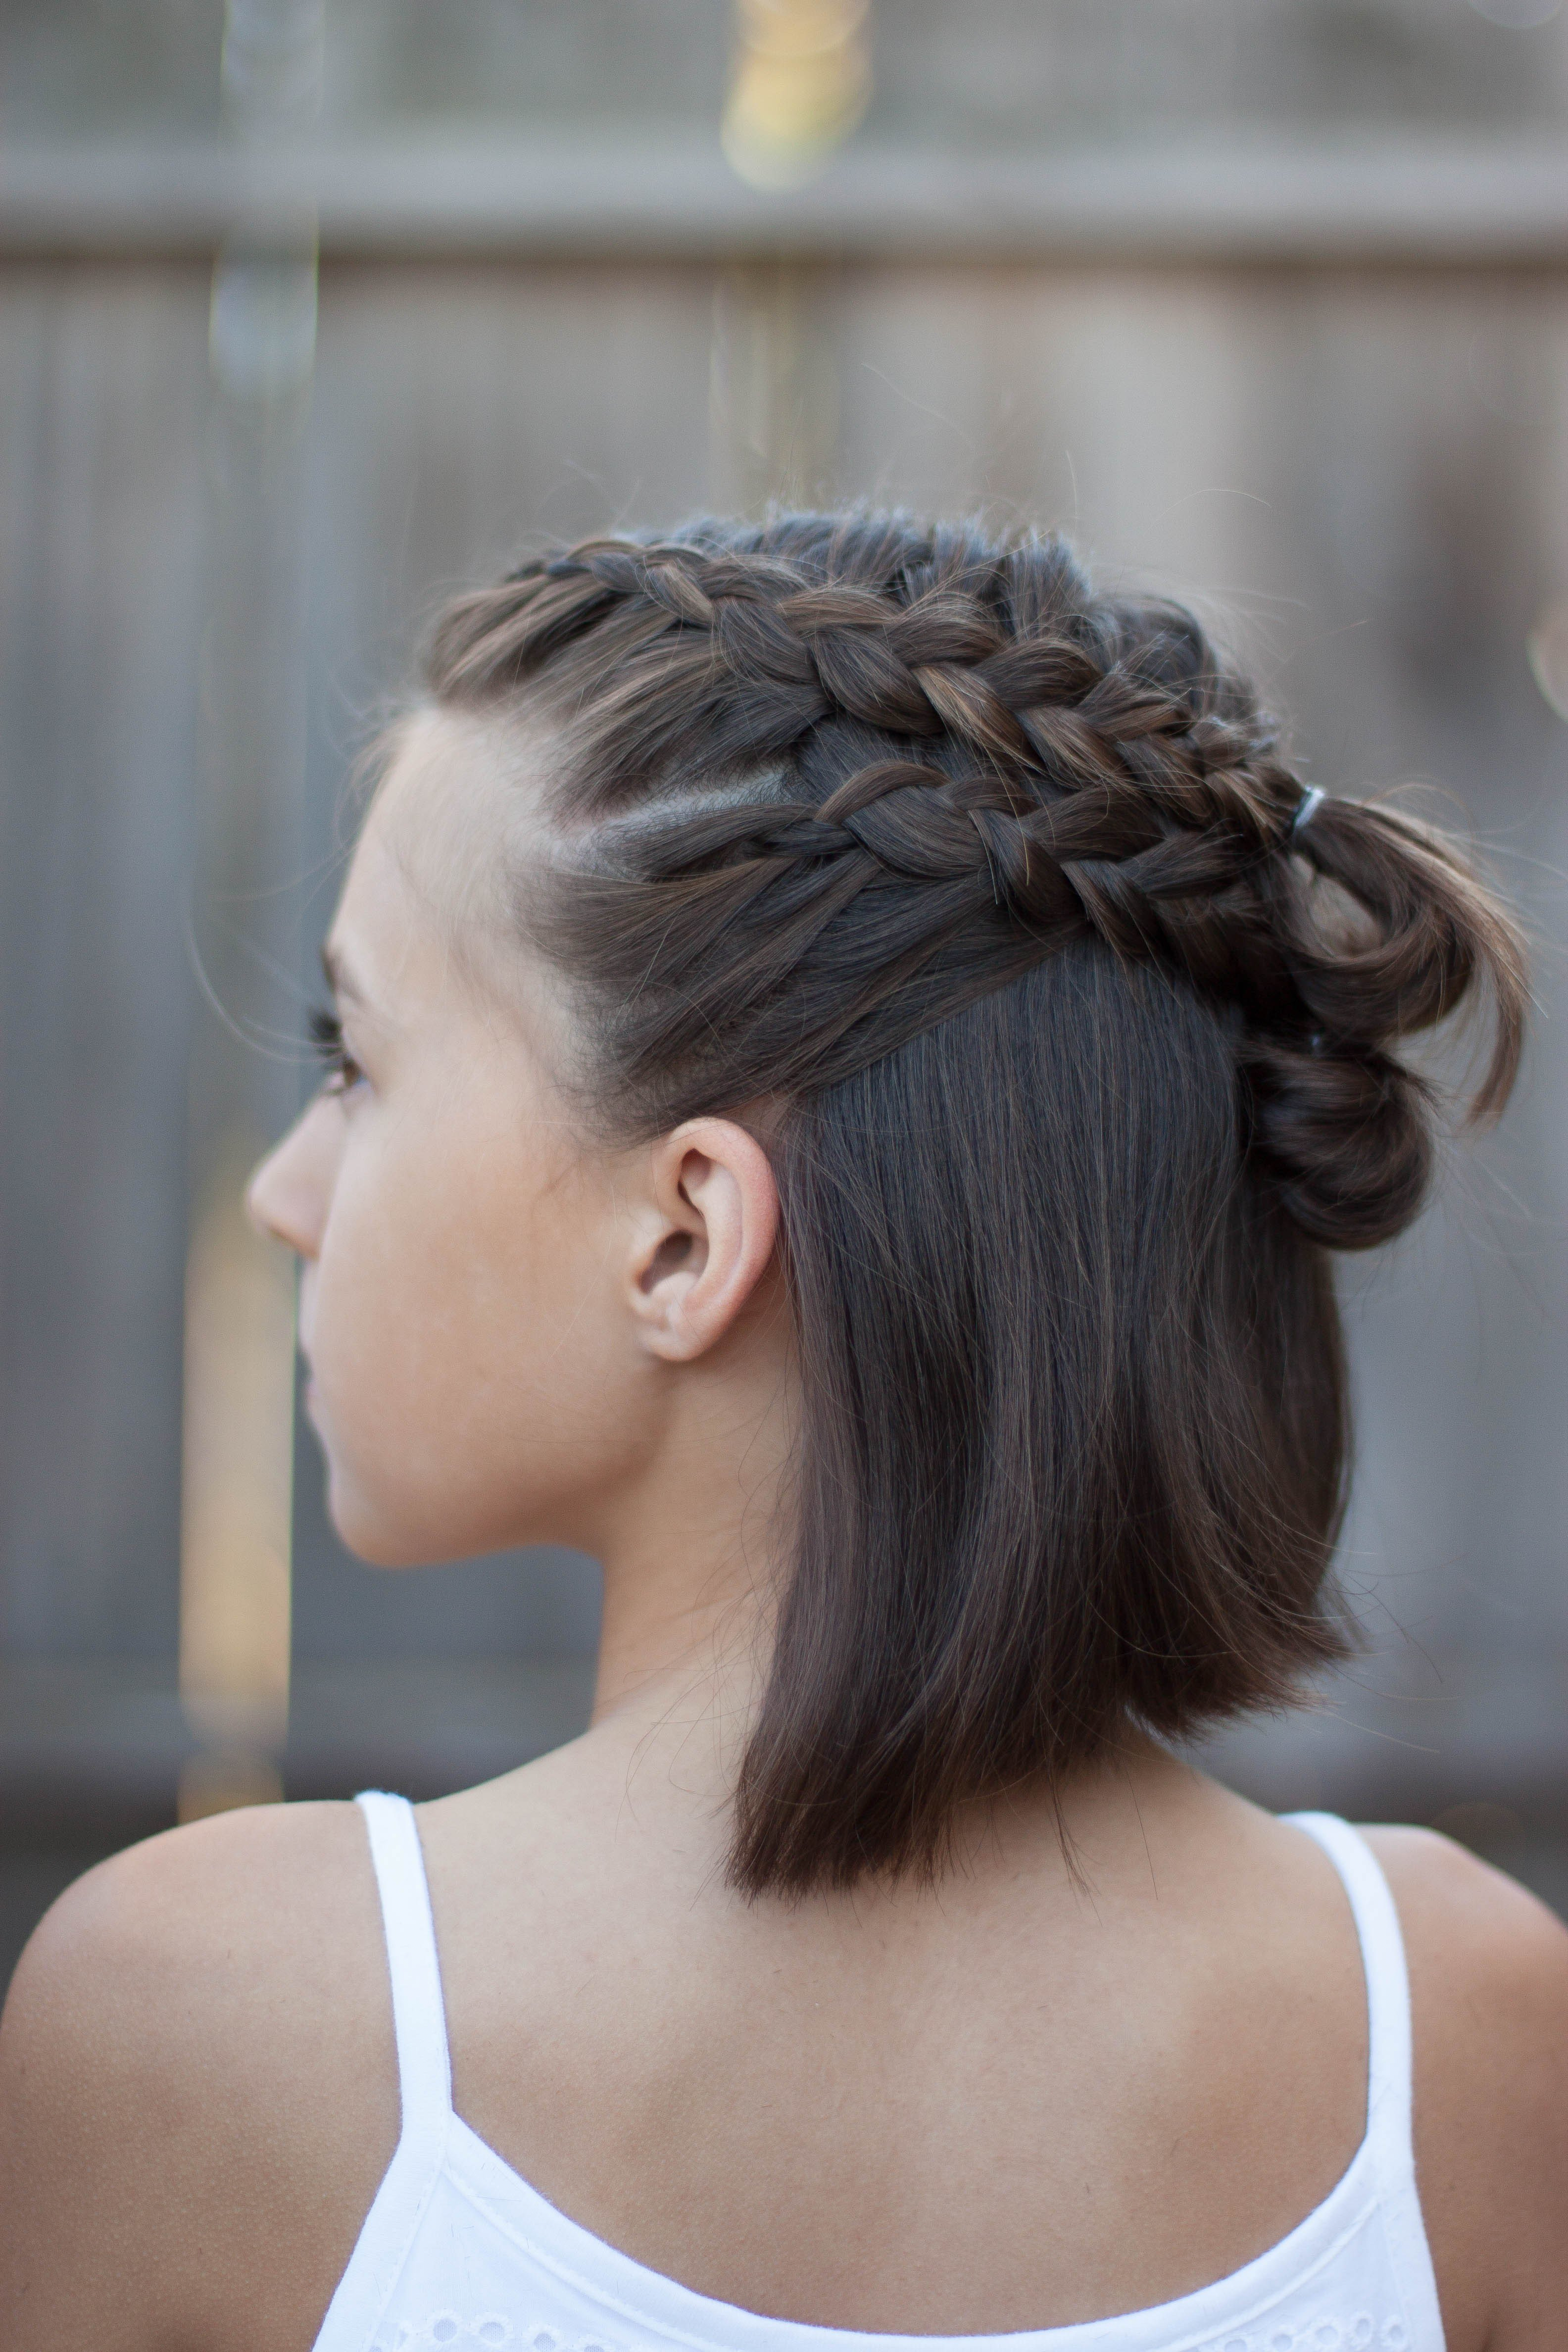 New Short Cute Hairstyles For Girls Ideas With Pictures ...